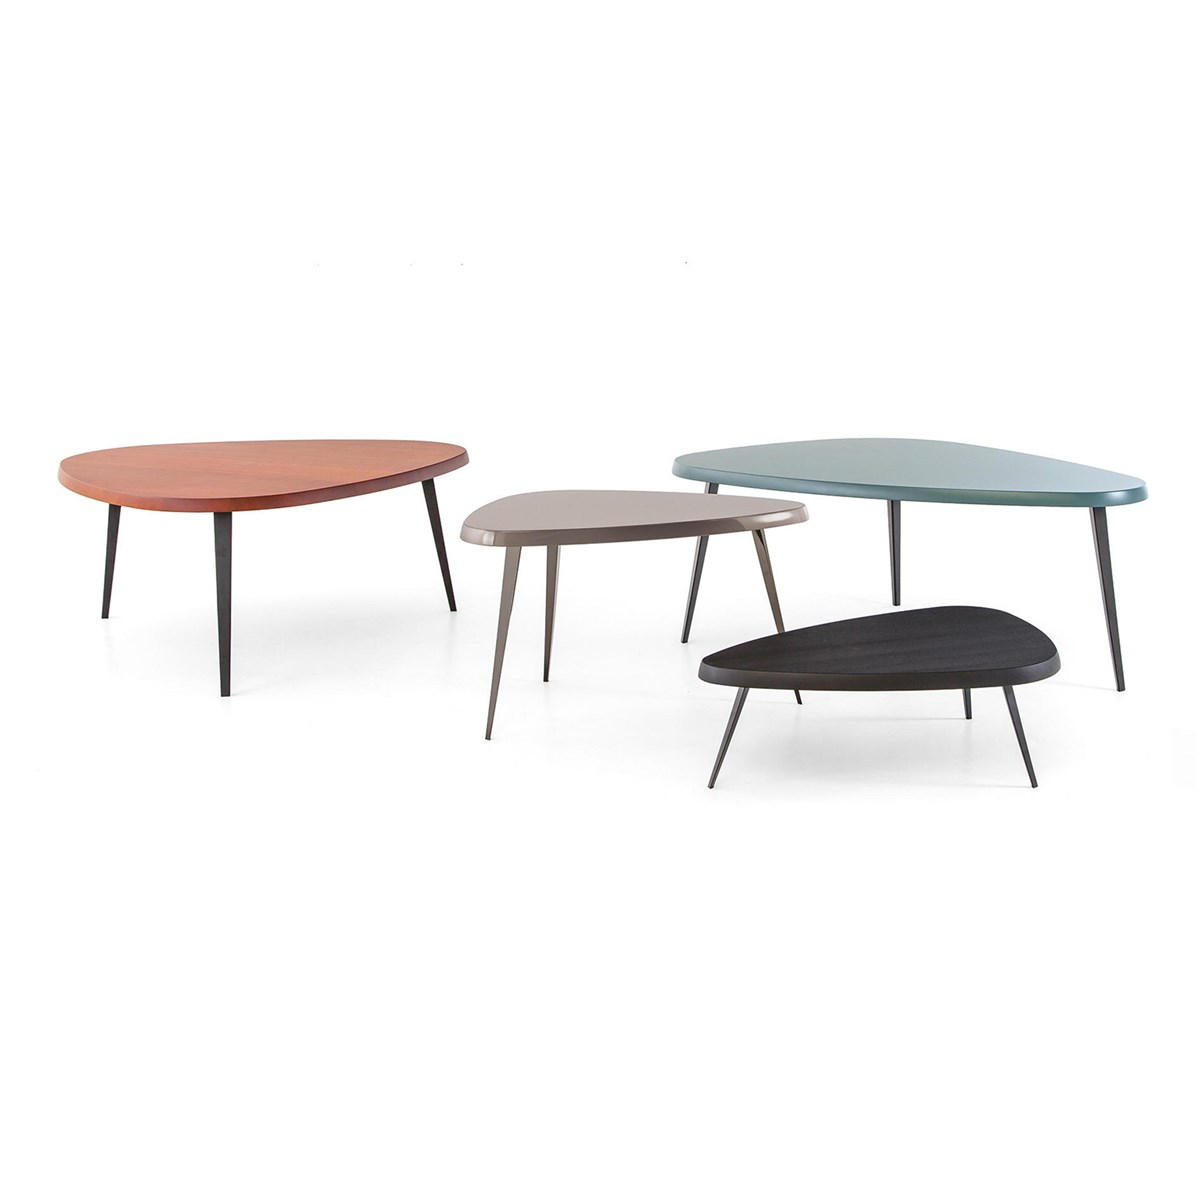 Cassina-Charlotte-Perriand-Mexique-Table-Matisse-1